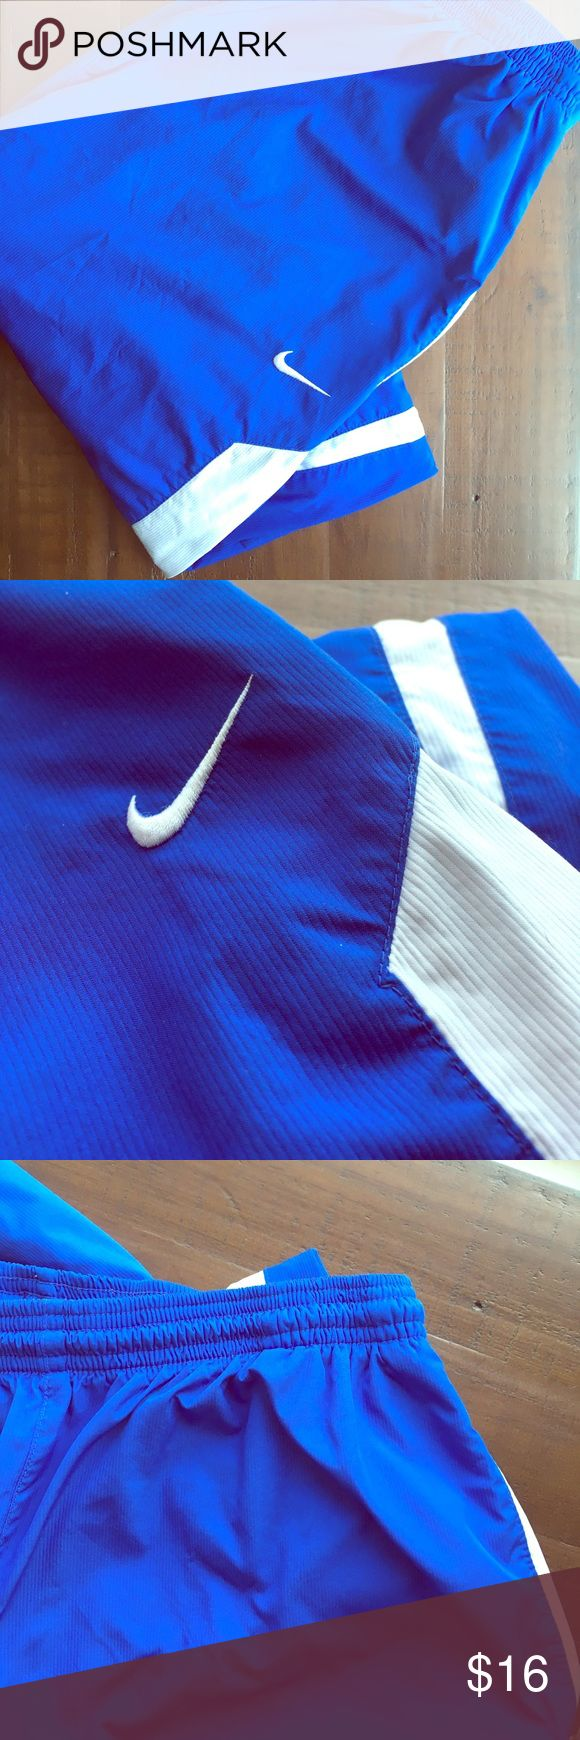 ⭐️Nike Blue & White Jogging Pants Size Medium ⭐️ ⭐️Nike Blue & White Jogging Pants Size Medium ⭐️ Nike Brand. Great condition! Very sleek. Zipper on the bottom sides by the ankles. Tightens at the waist band. Next Day ship. All sales are final. ** Matching blue & white Nike shirt sold separately in my closet** perfect match! https://bnc.lt/focc/eKLik7CAWD Nike Pants Track Pants & Joggers